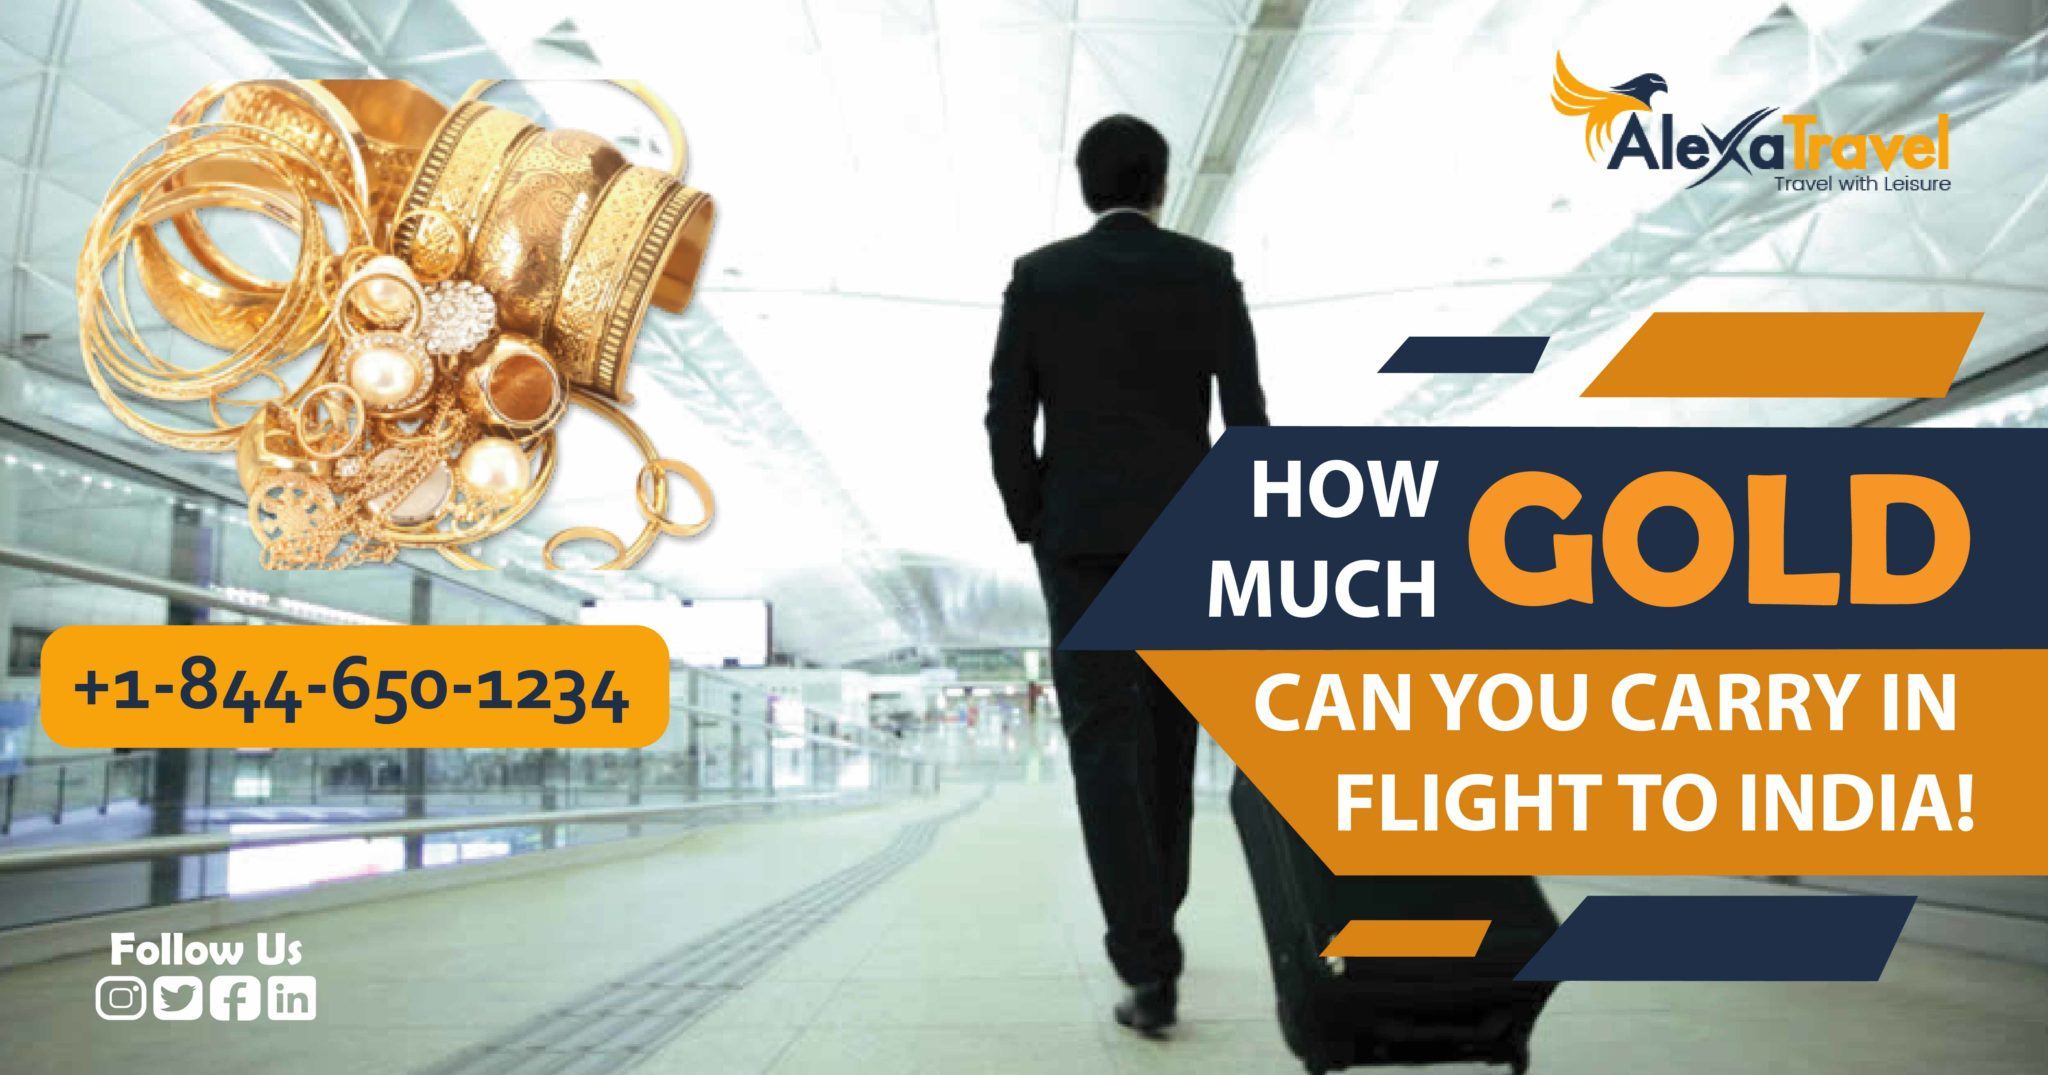 how much gold can you carry in flight to india